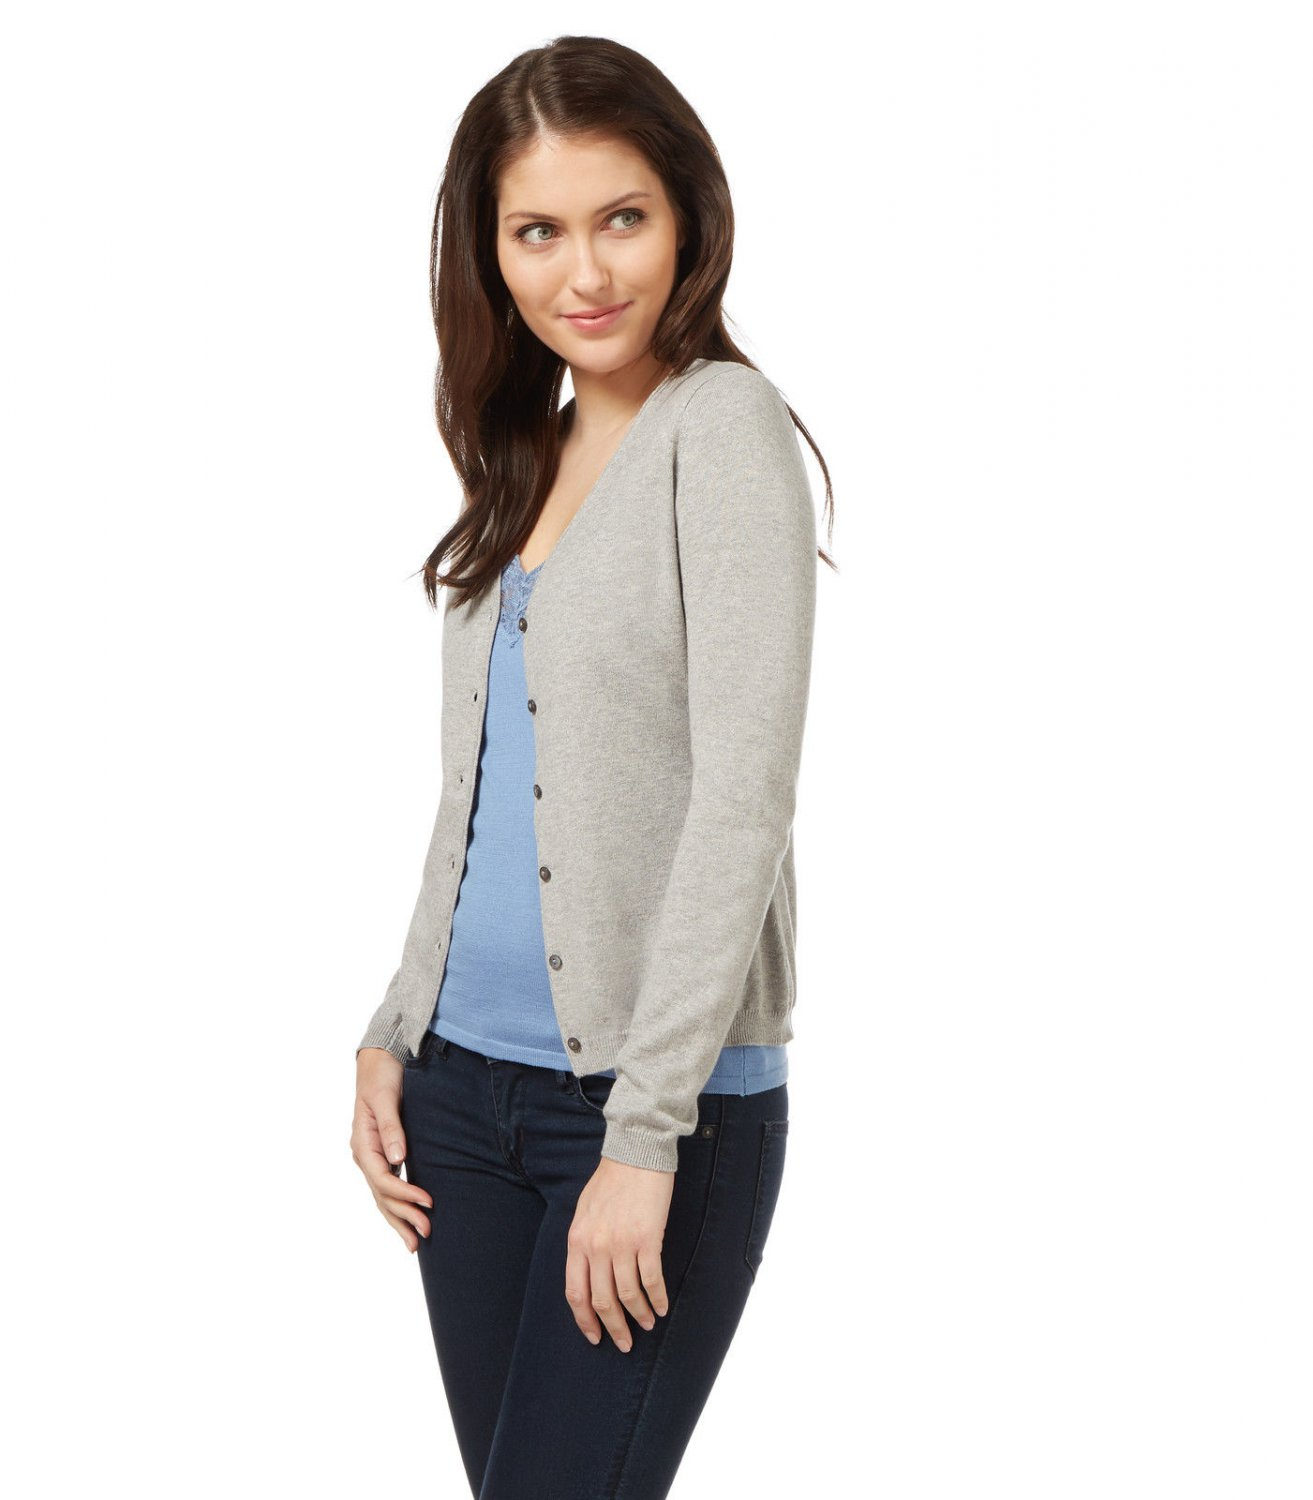 WoolOvers Womens Silk Cotton Soft Feel V Neck Long Sleeve Button Cardigan Top